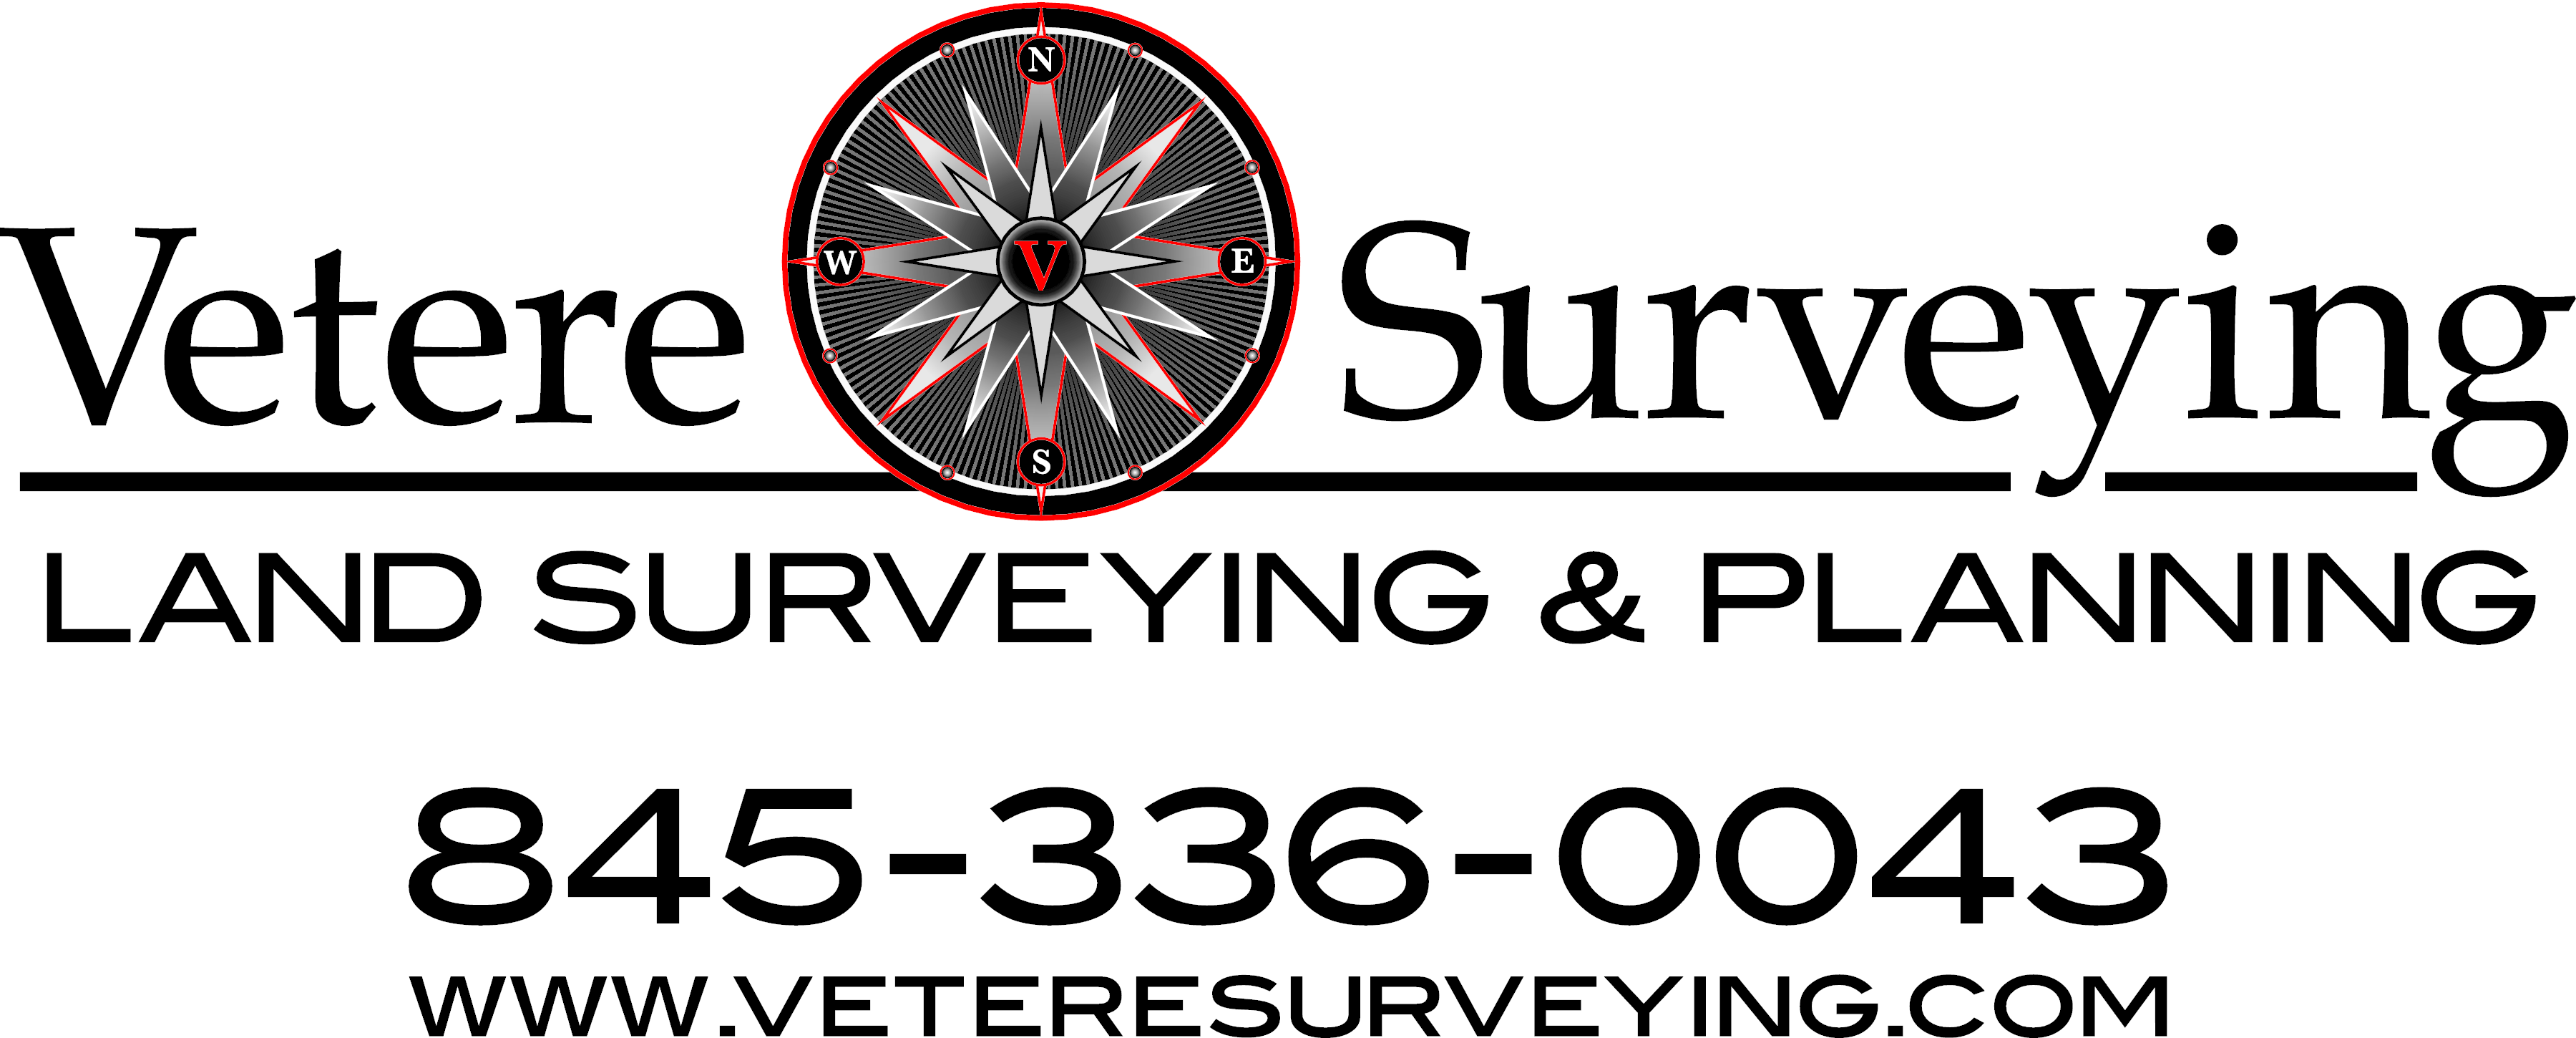 Vetere Land Surveying